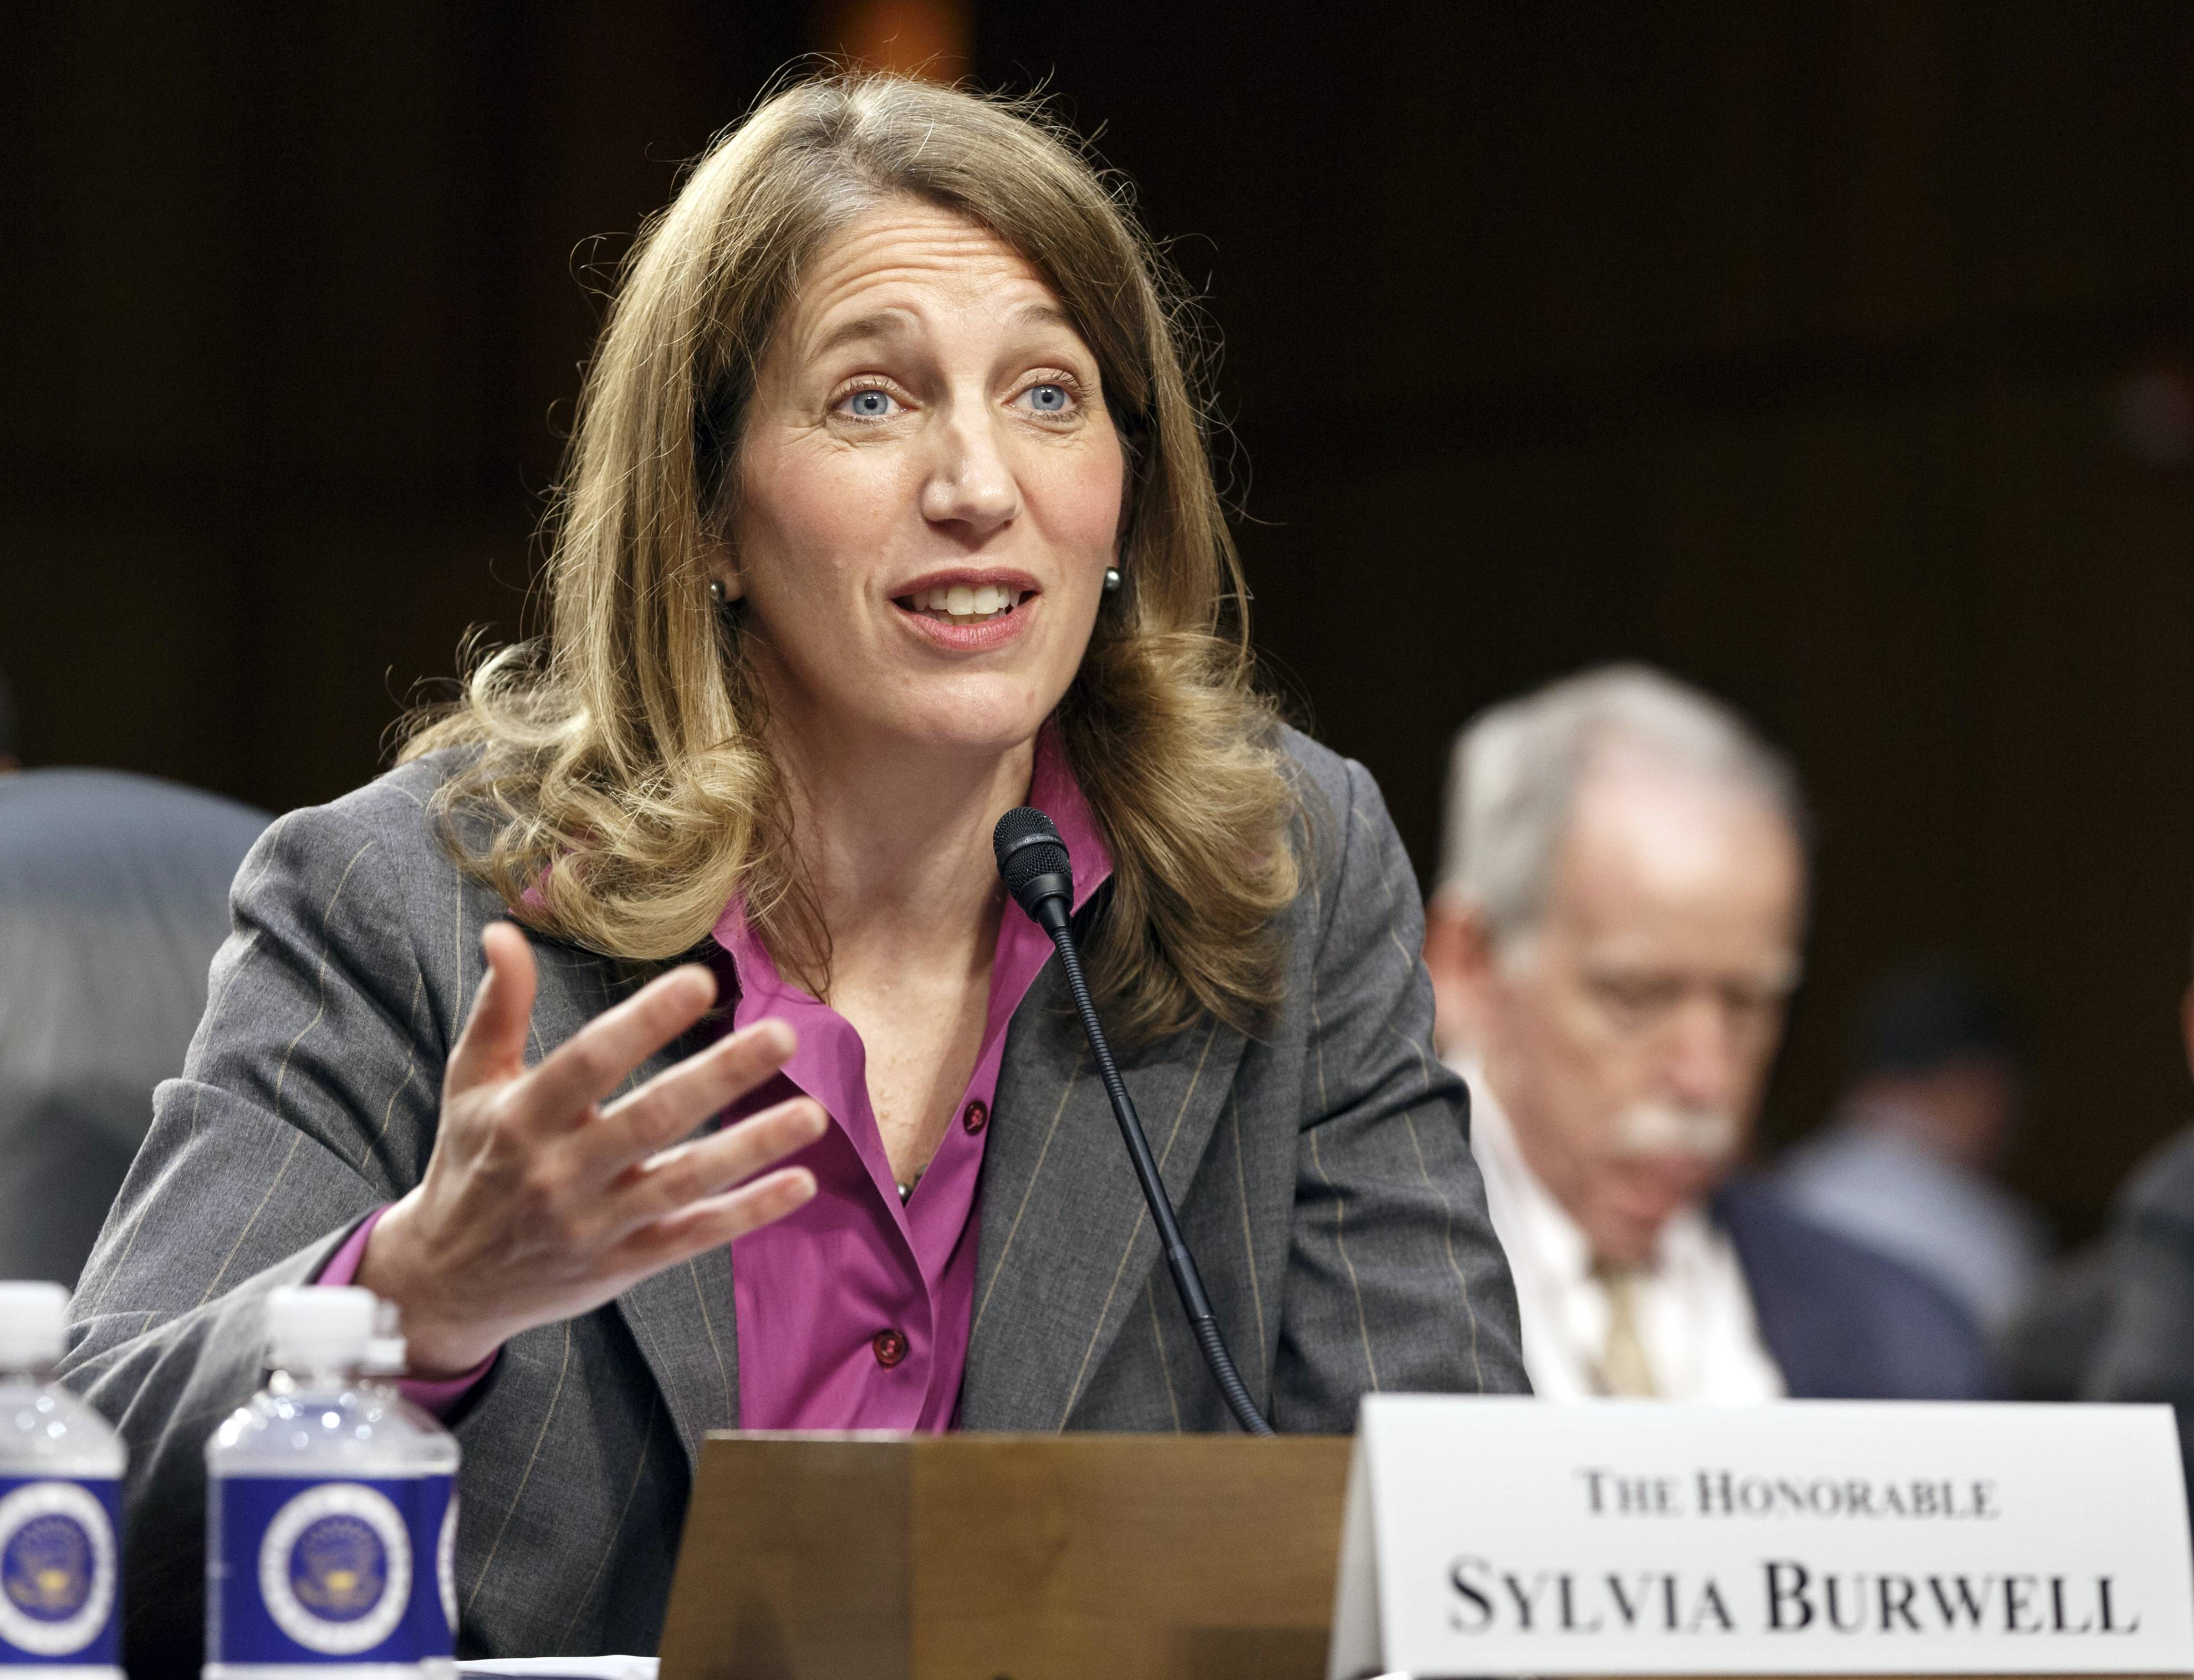 Sylvia Mathews Burwell, President Barack Obama's nominee to become secretary of Health and Human Services testifying on Capitol Hill in Washington. More than 2 million people who got health insurance under President Barack Obama's law have data discrepancies that could jeopardize coverage for some, a government document shows.